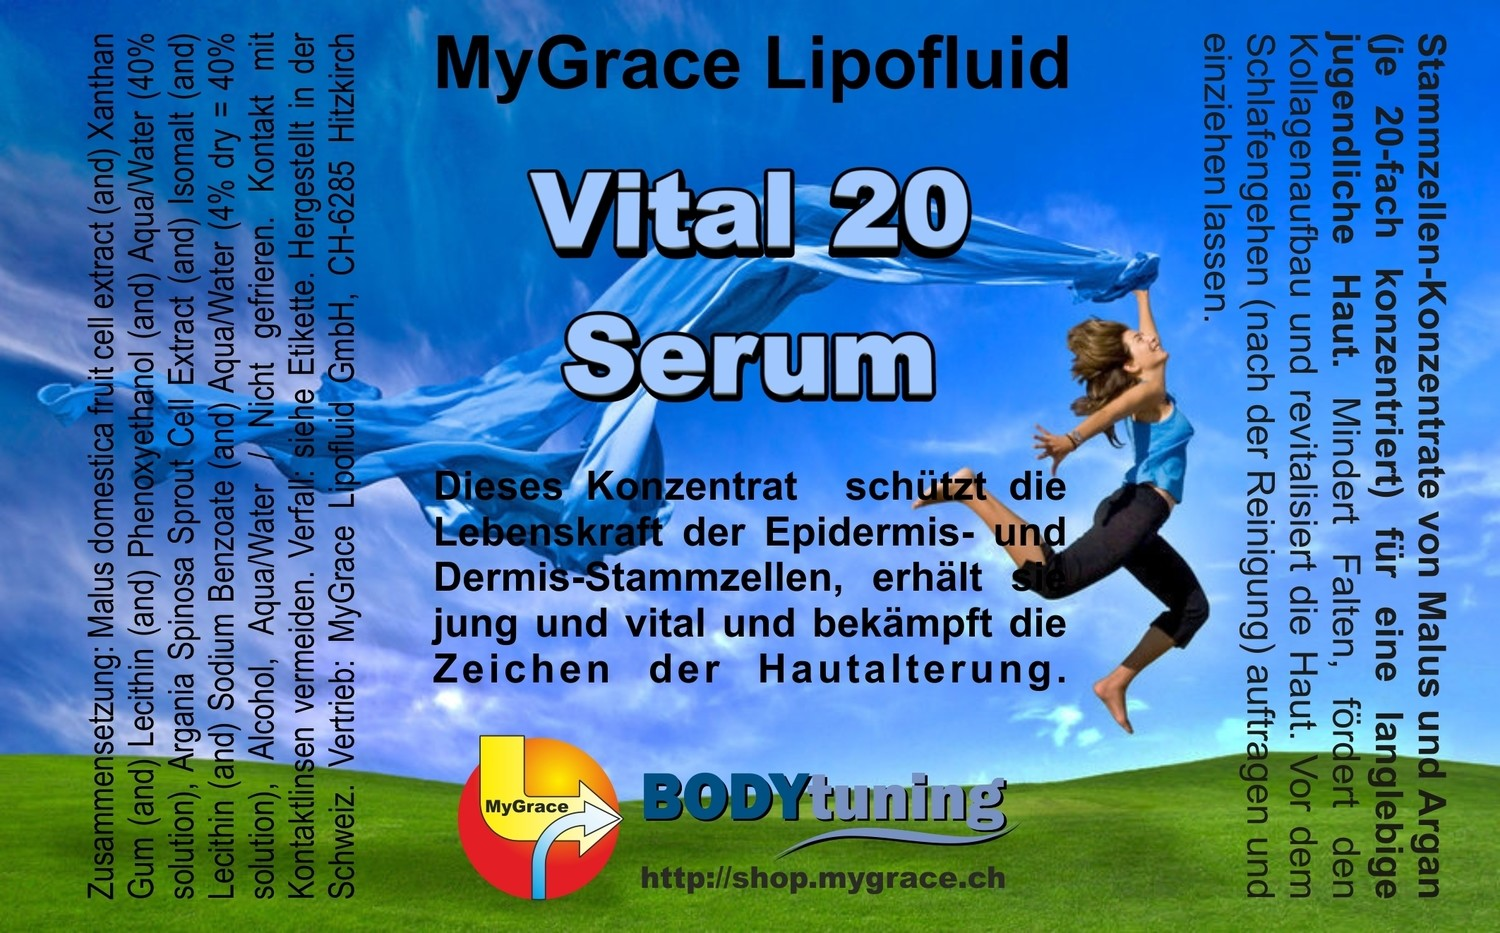 MYGRACE Vital 20 Serum 50 ml